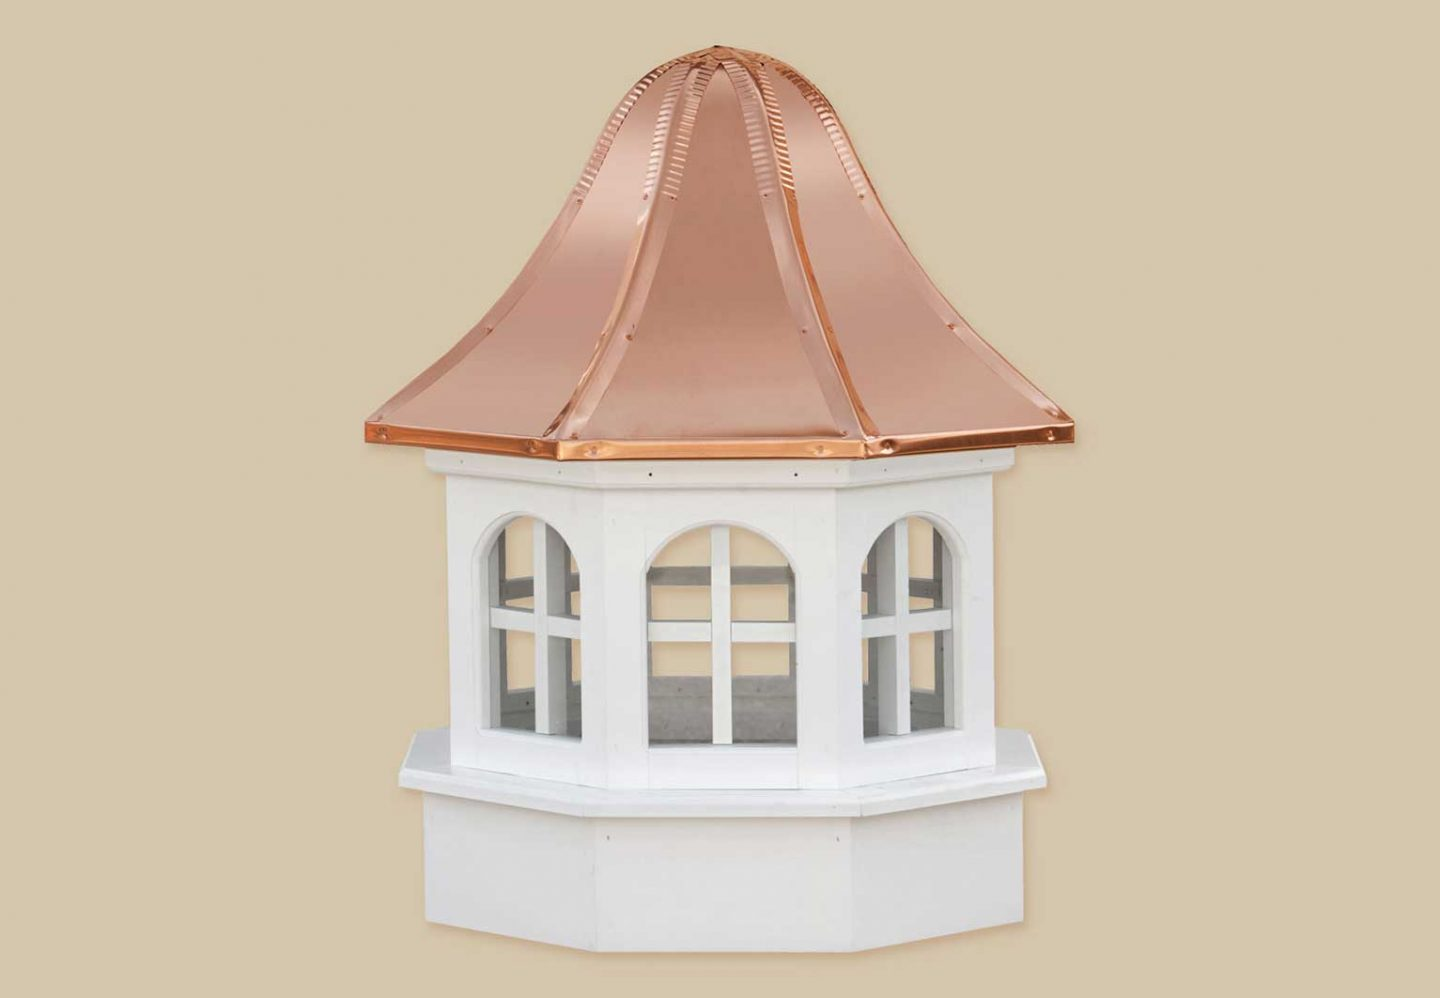 Viilla-Estate-Series-Gazebo-Cupola